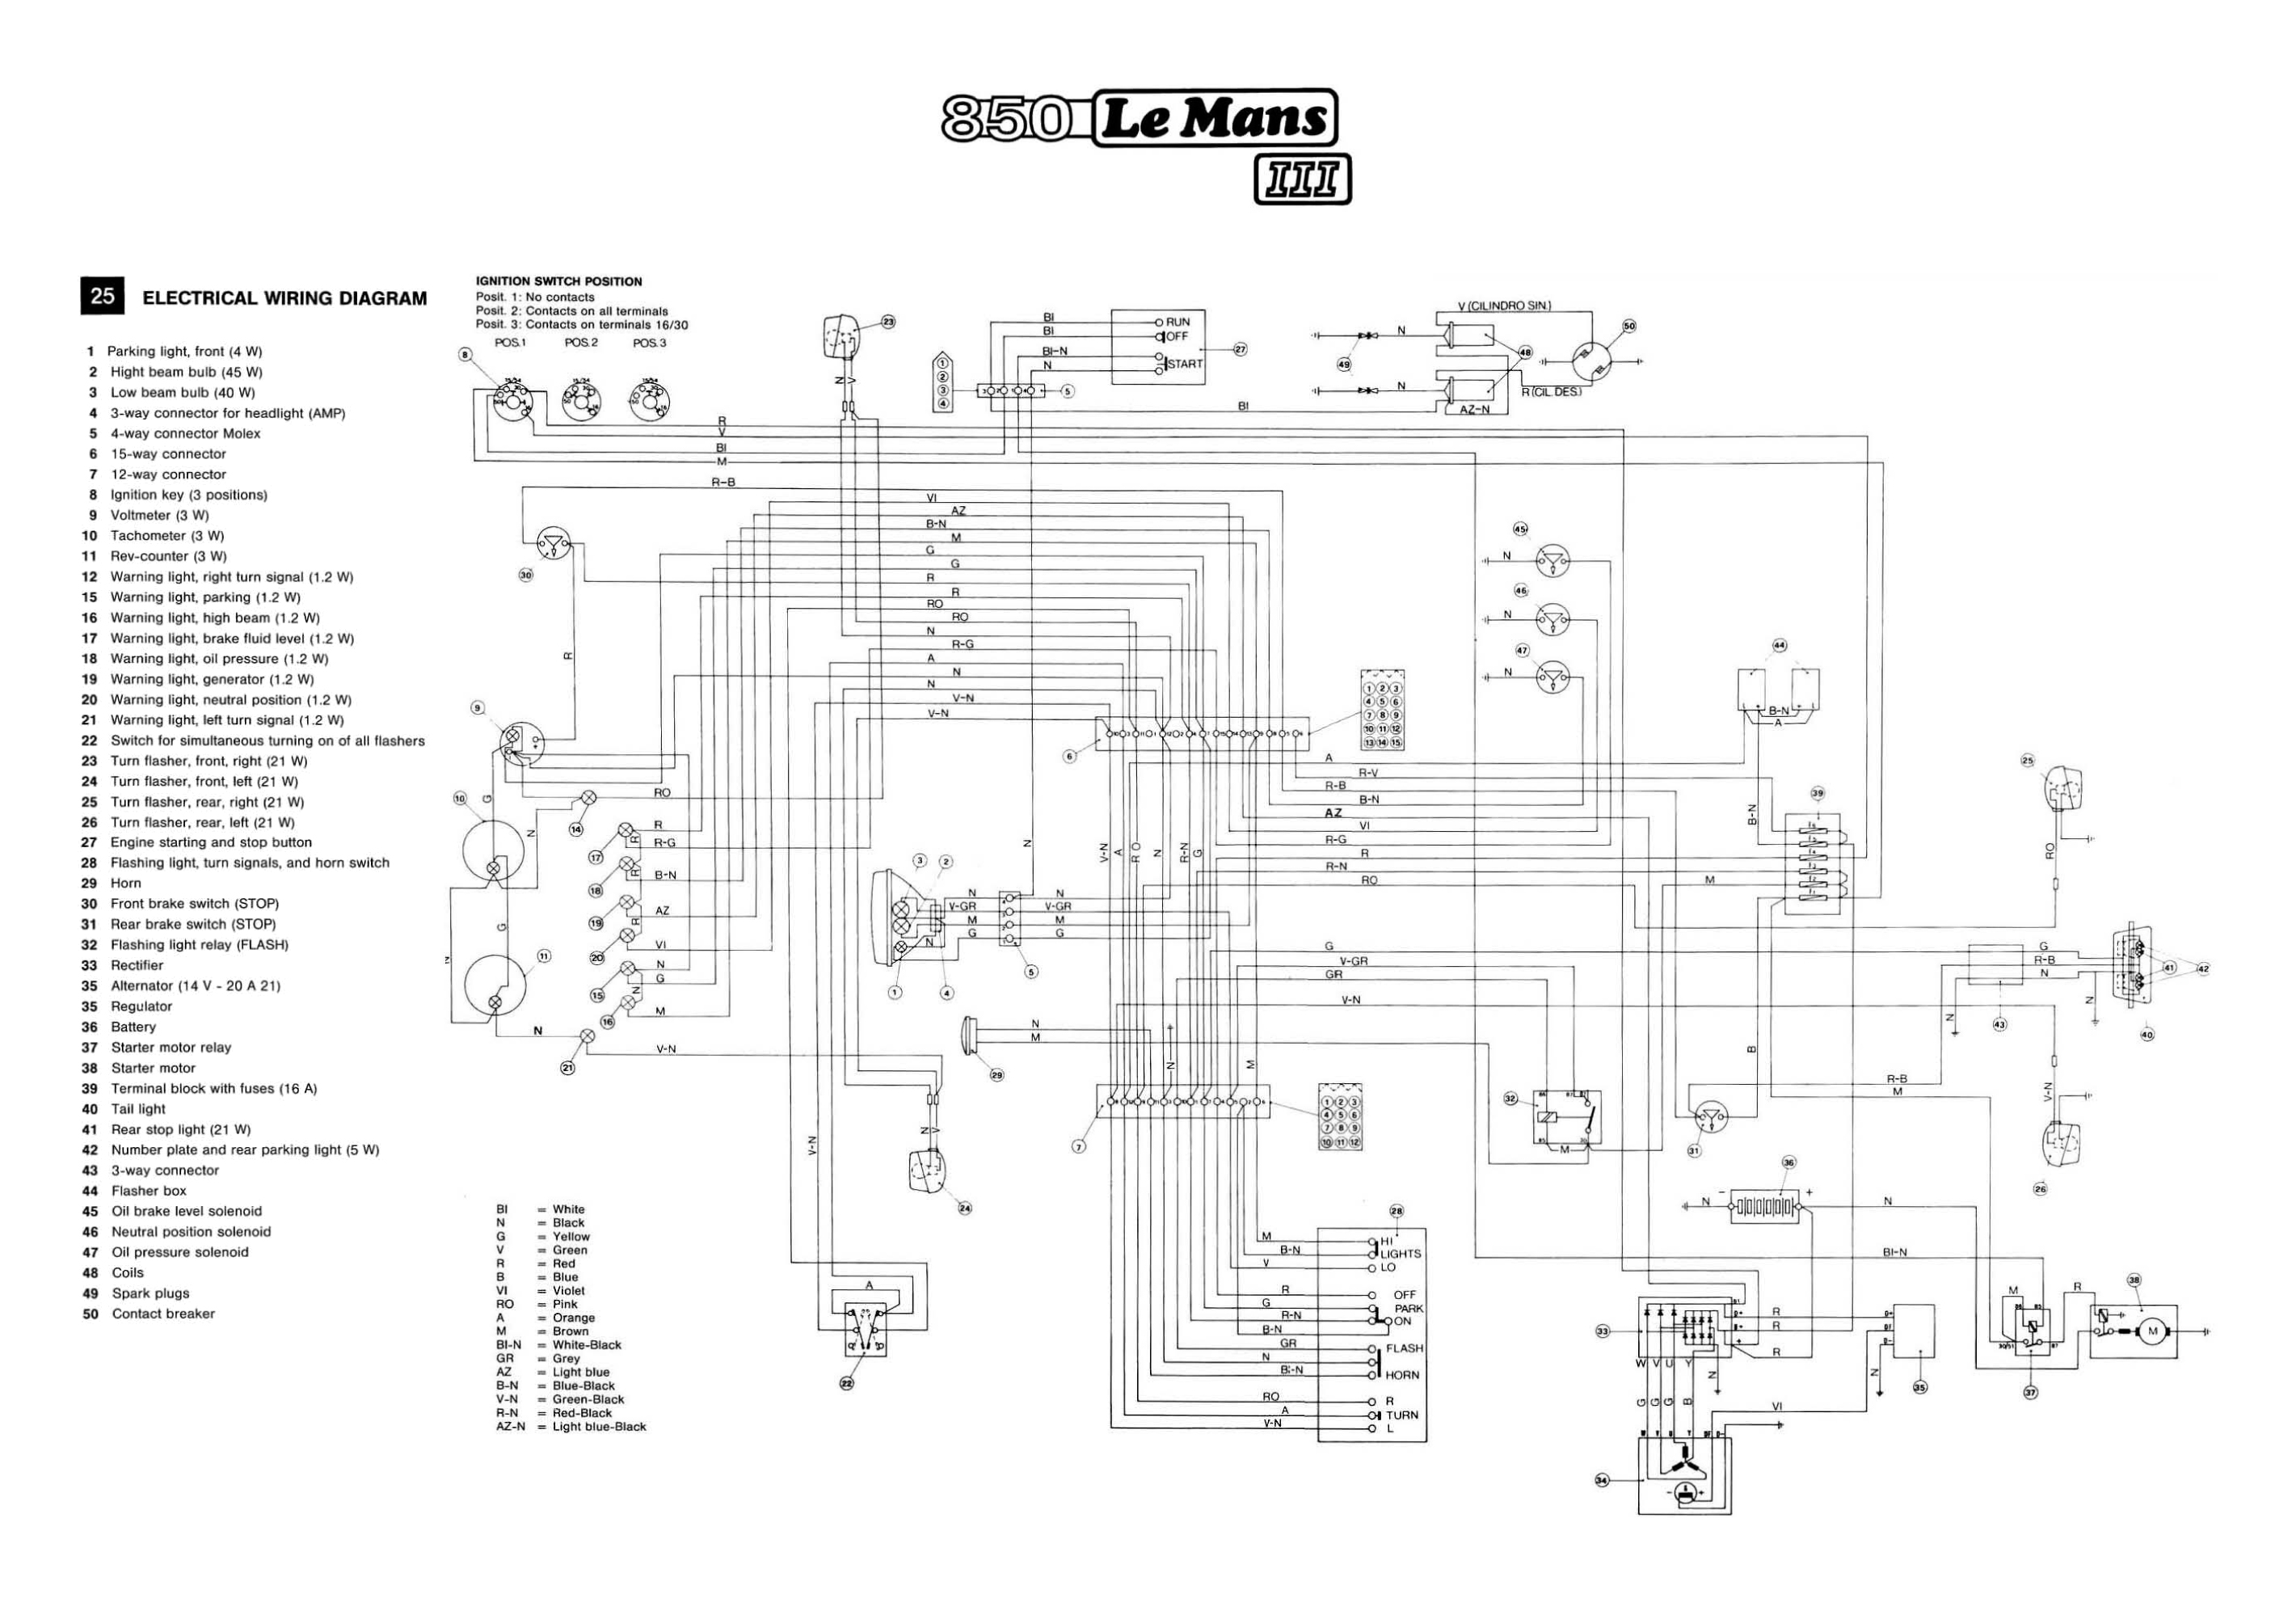 wiring diagrams wiring diagrams rh kabel schute de moto guzzi california wiring diagram moto guzzi v7 wiring diagram